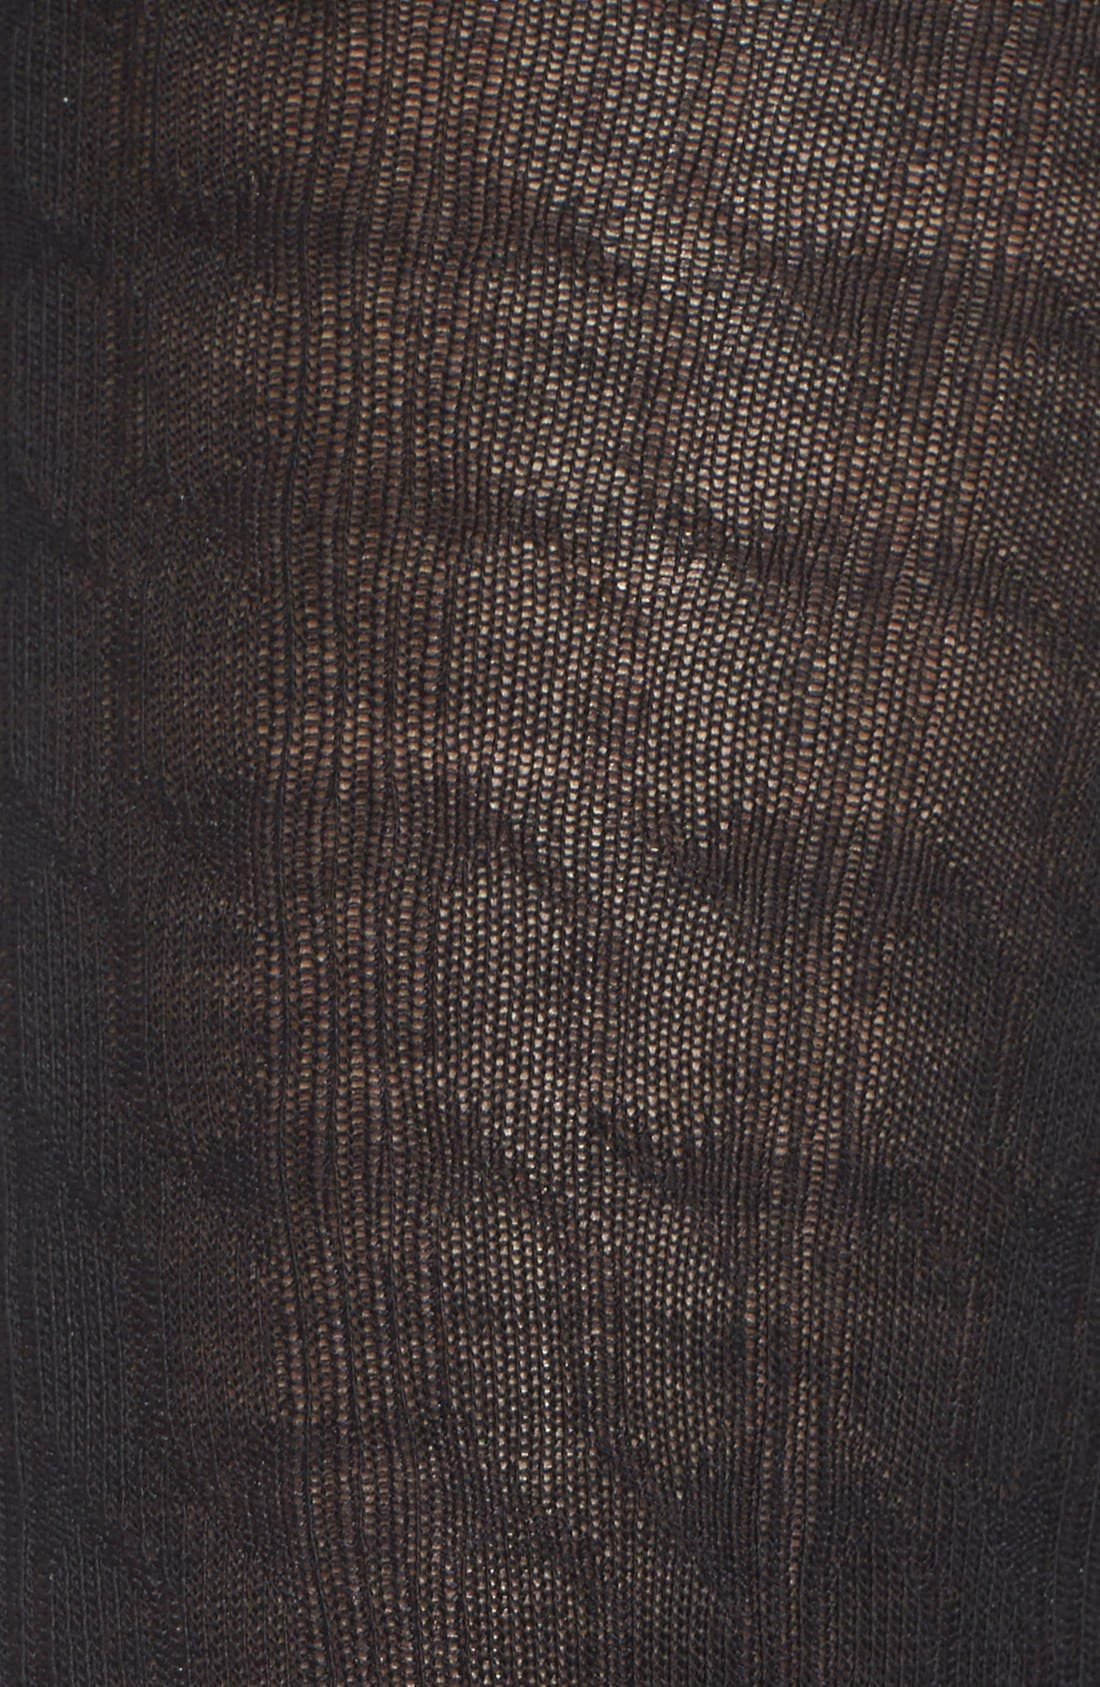 Cable Knit Tights,                             Alternate thumbnail 2, color,                             Black